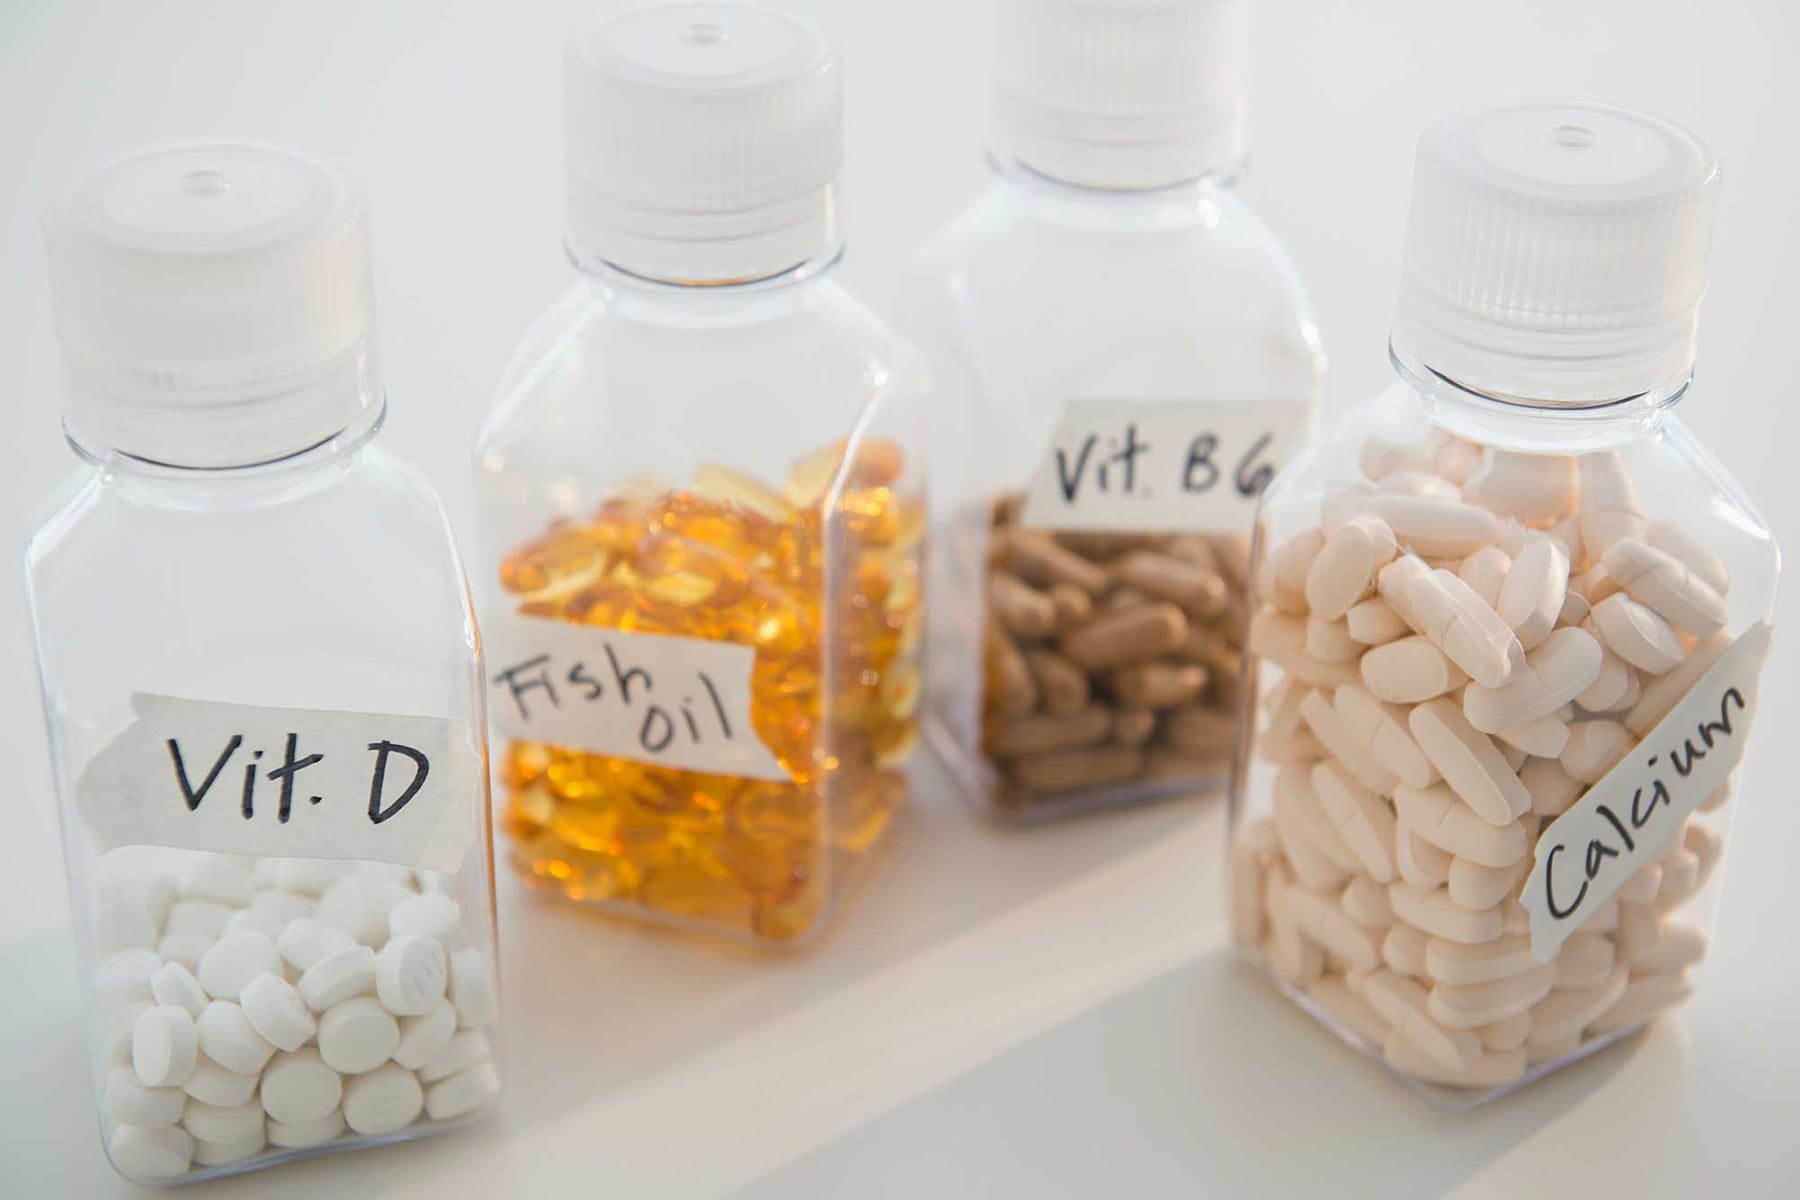 Various pills and vitamins in bottles